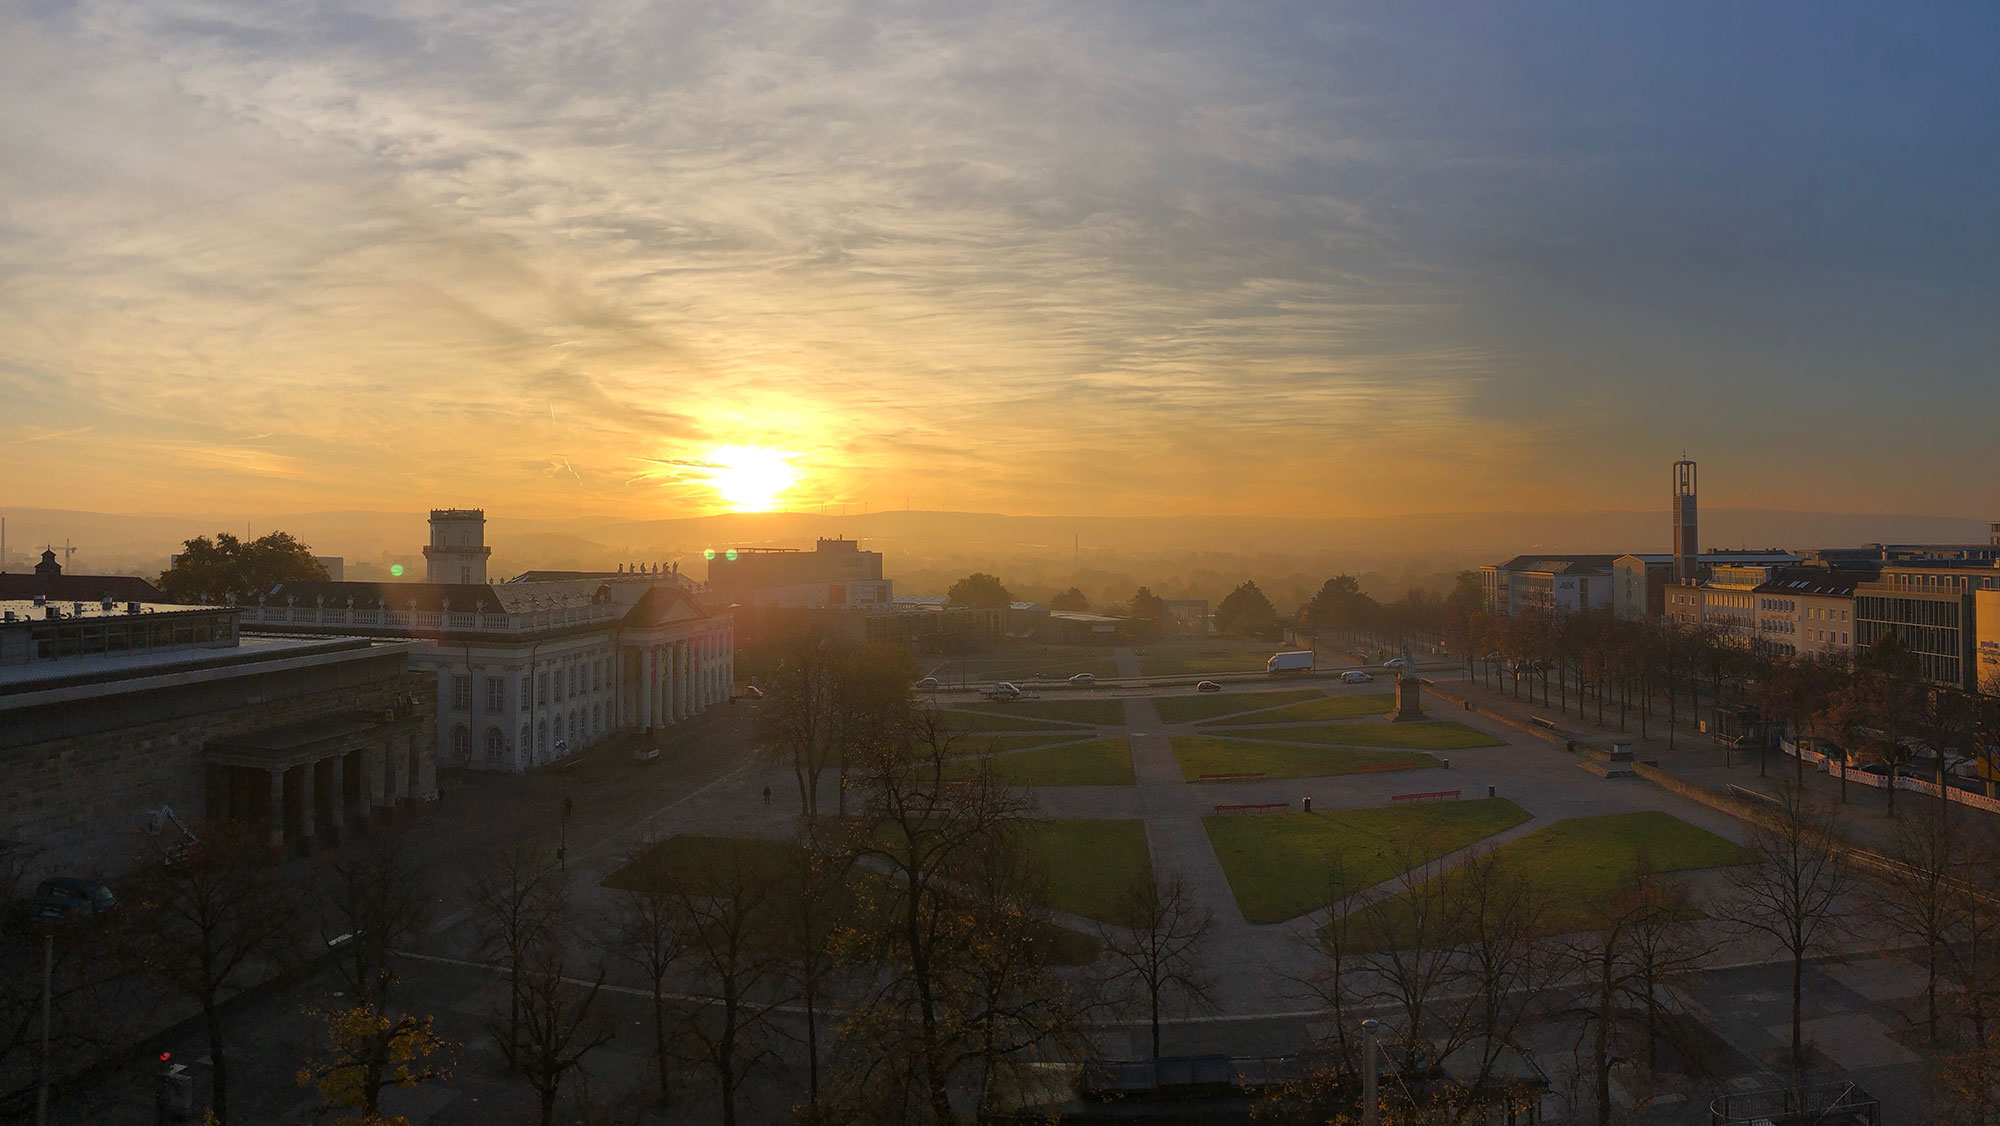 Sunrise in Kassel's downtown